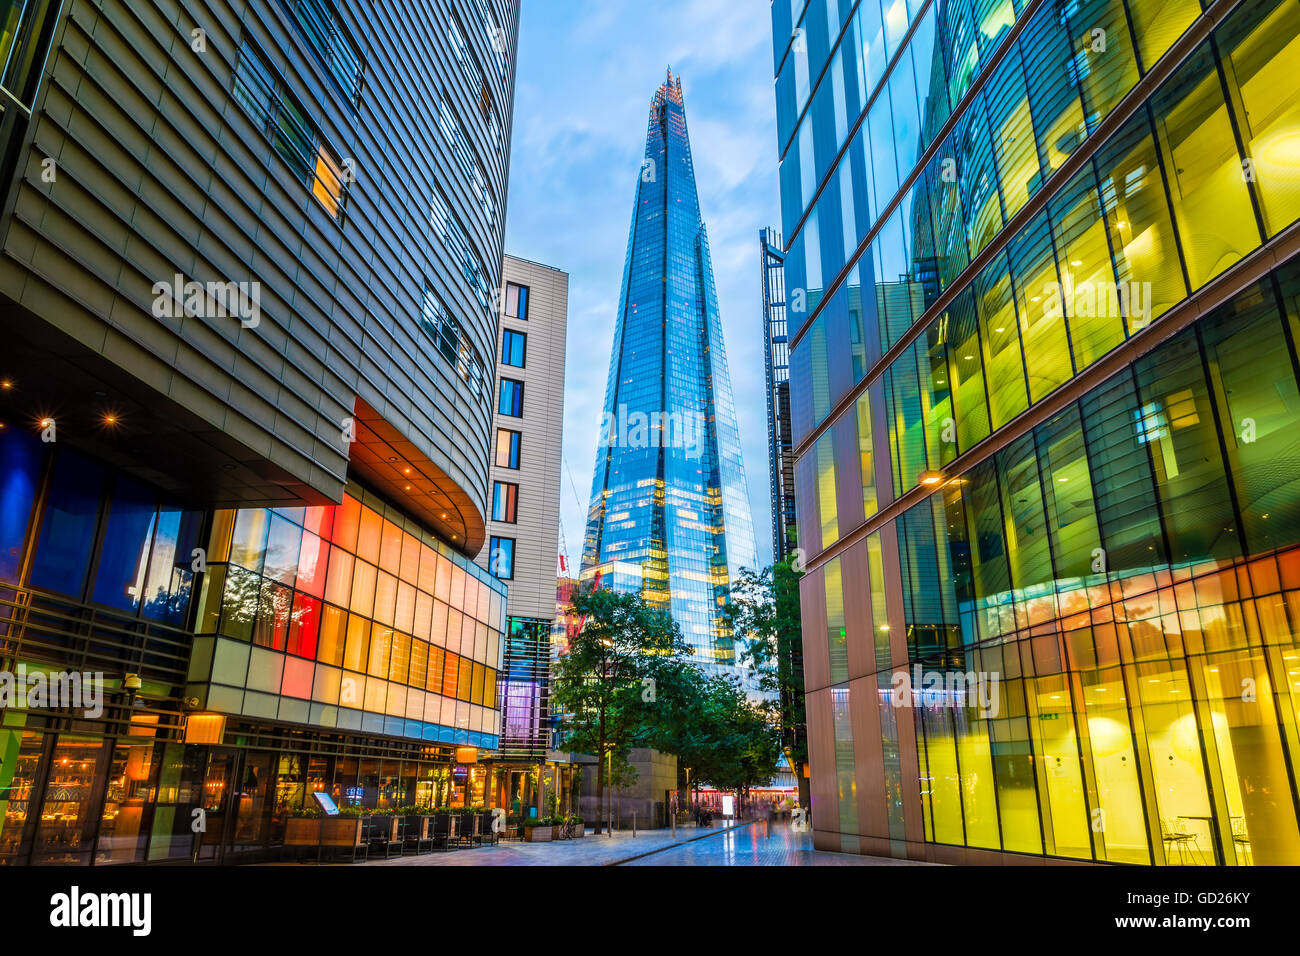 Street view of modern buildings in London, including The Shard Stock Photo